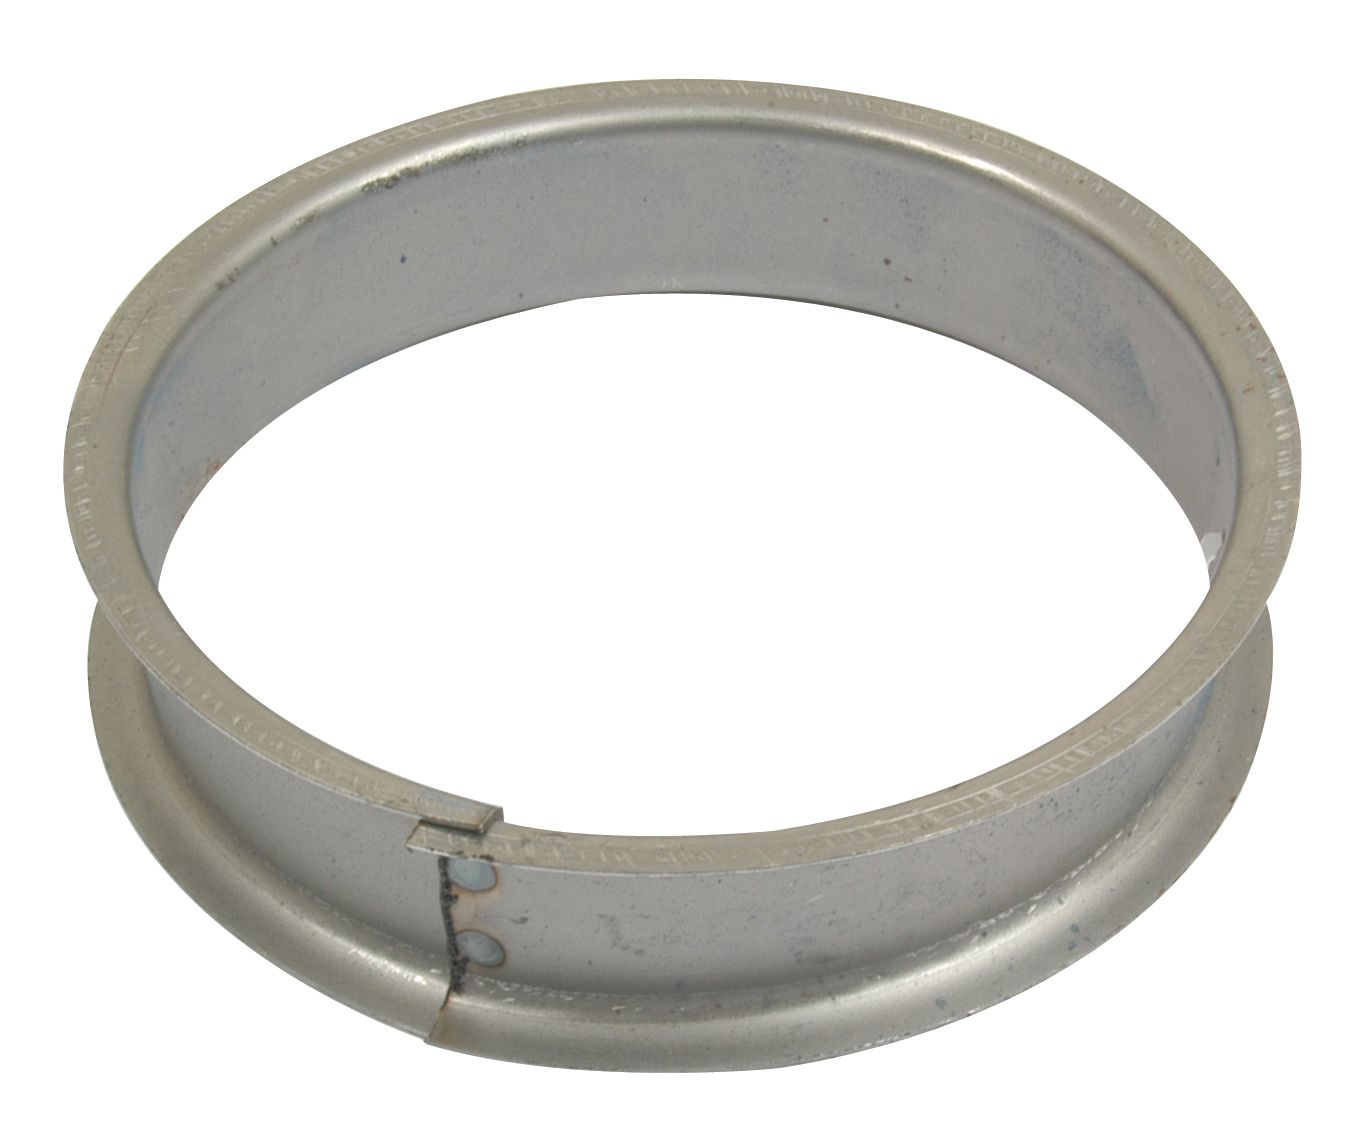 "MCCONNEL BUSH-AXLE SPACER 5"" SHAFT"